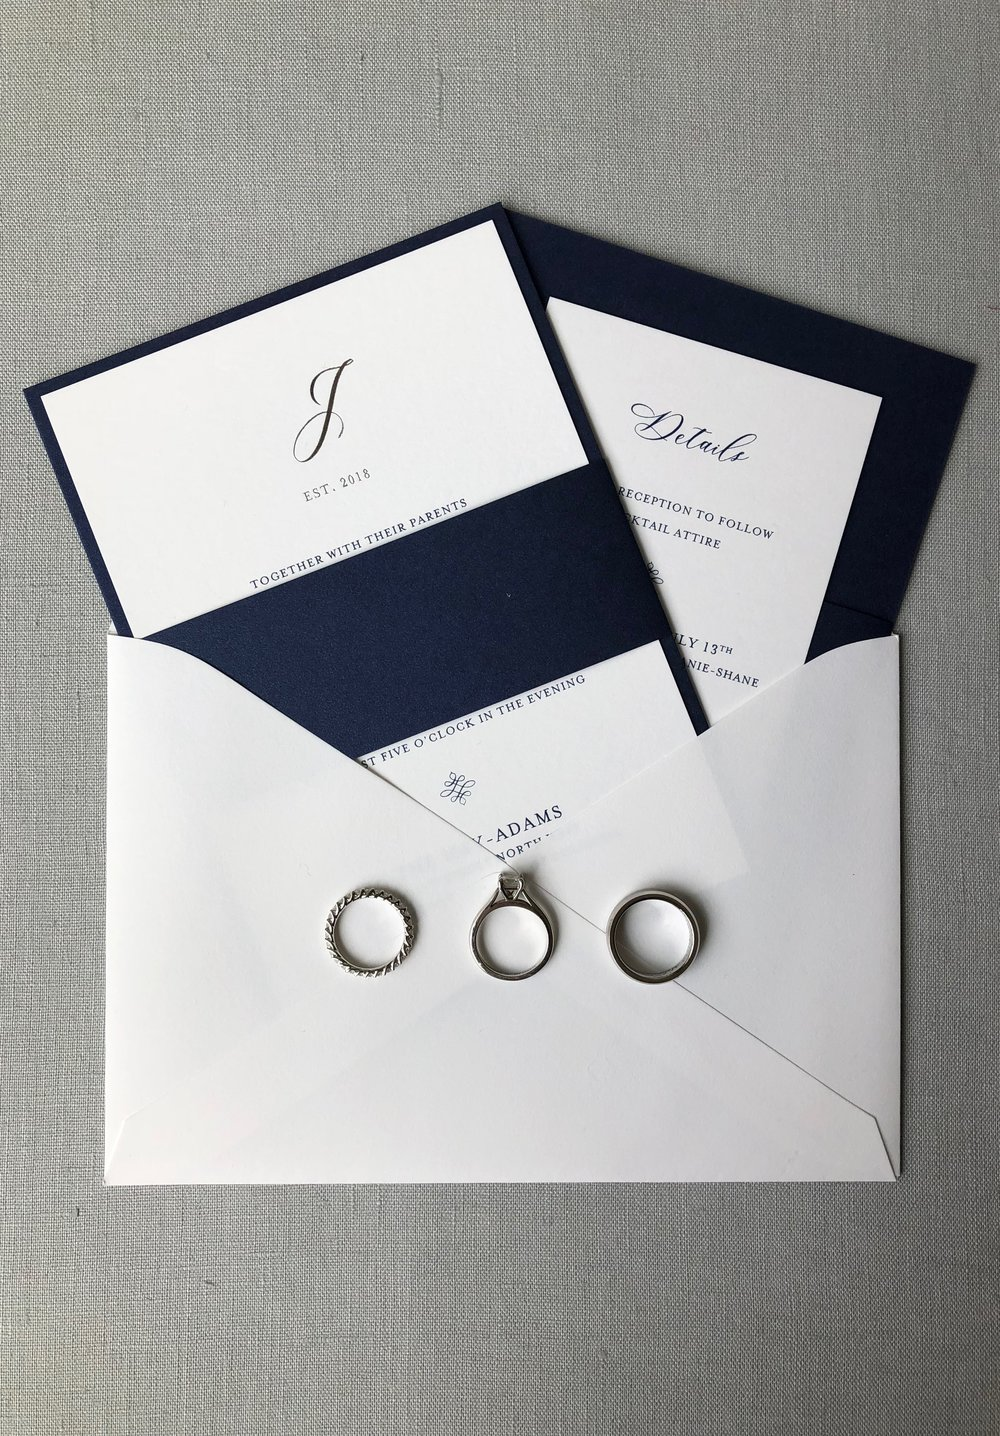 mel+shane invitation suite.jpeg